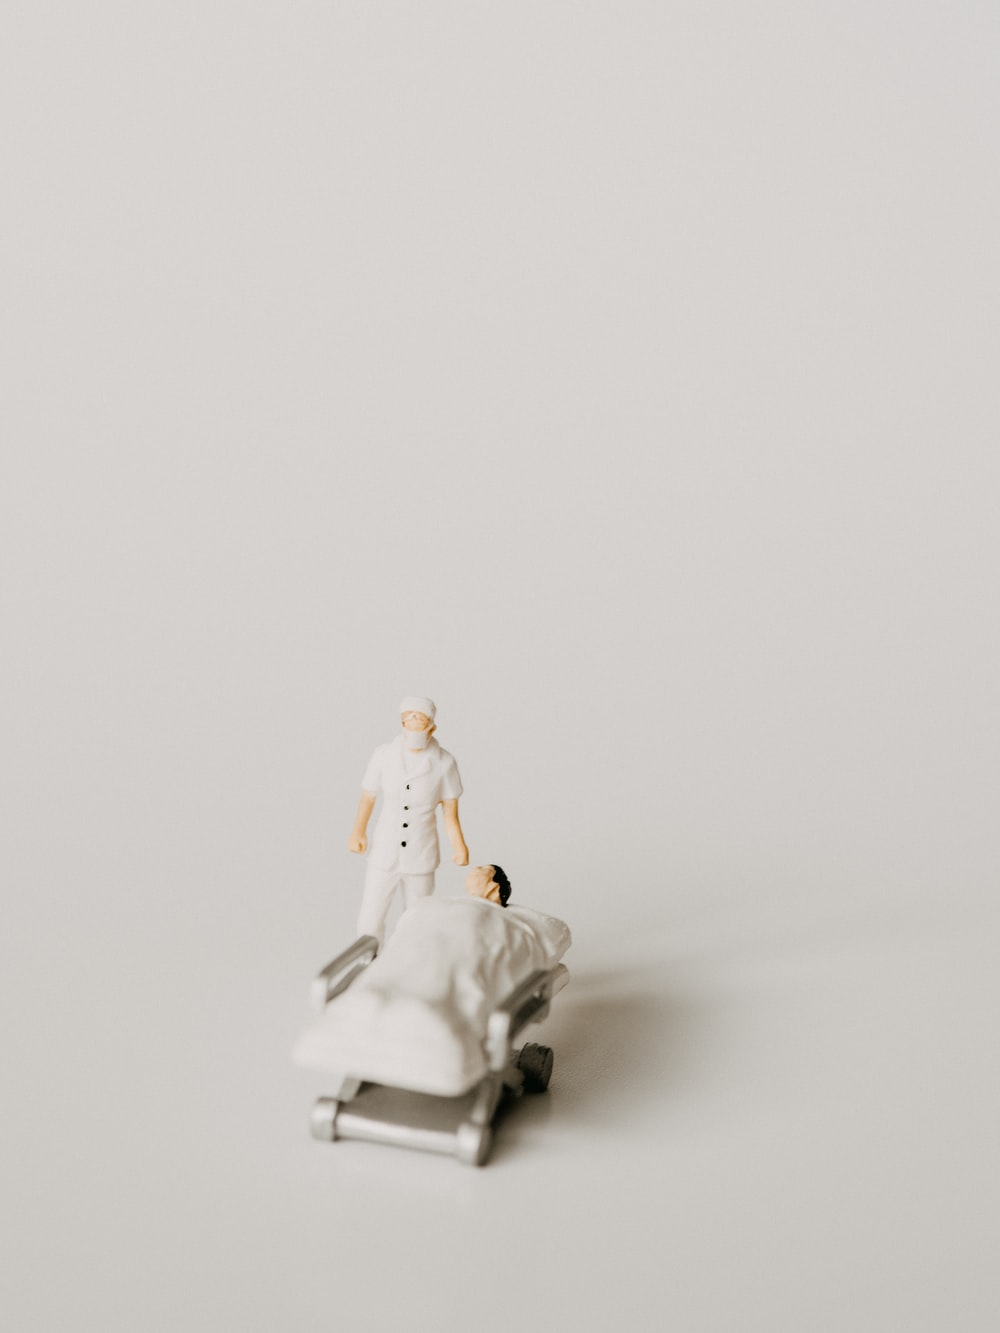 white ceramic figurine on white surface